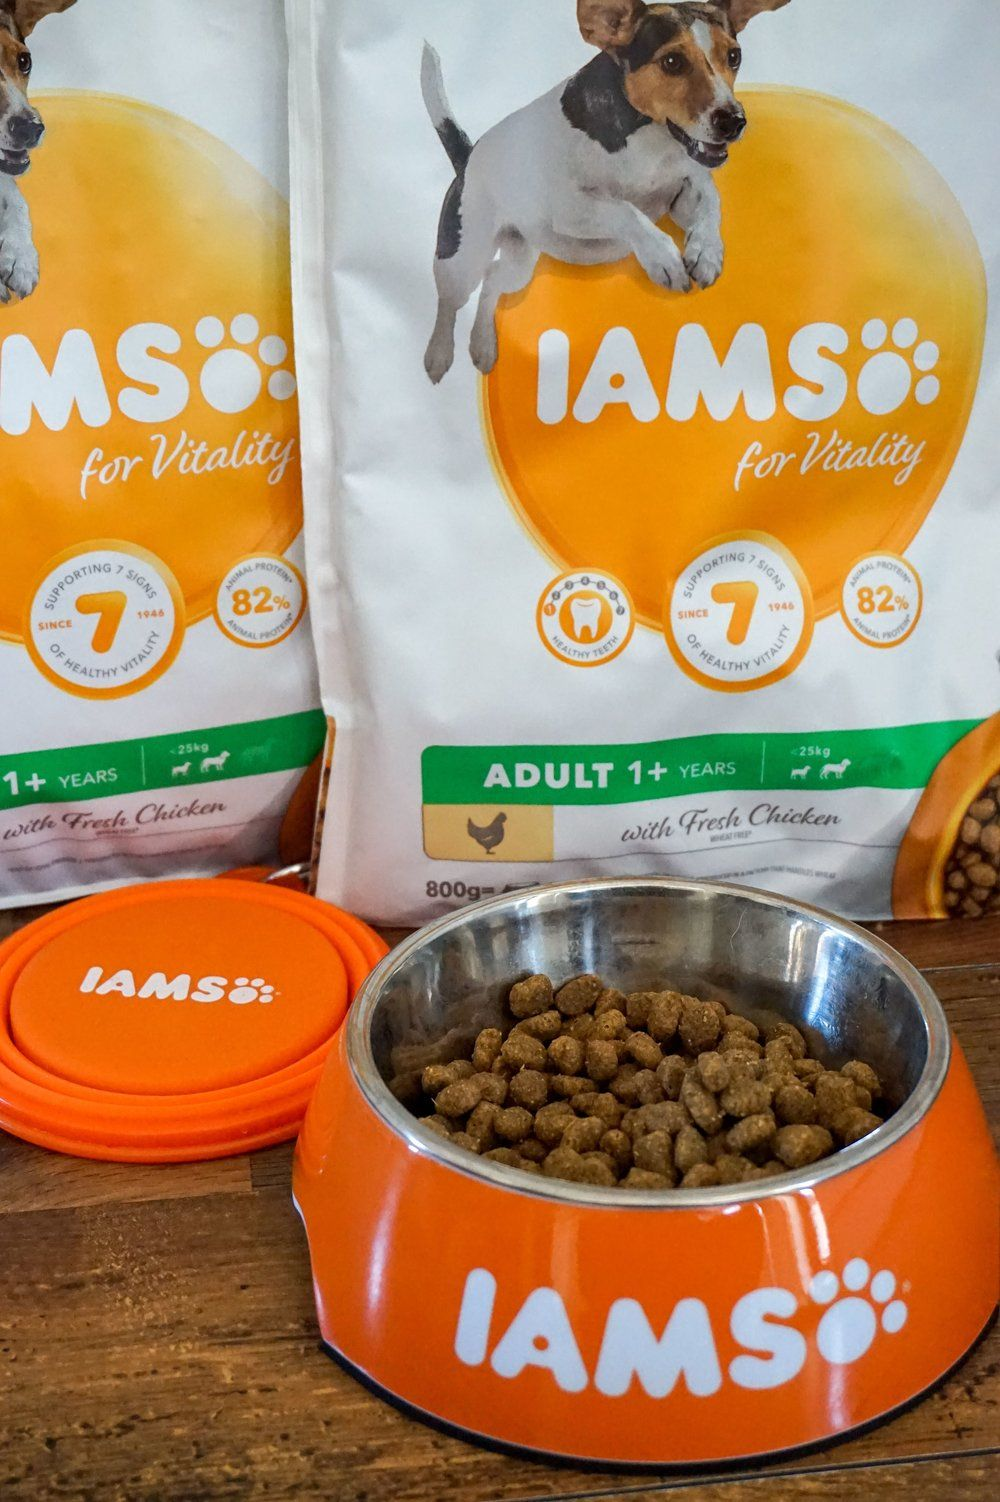 Photo From Iams Pet Models Collection By Love To Laugh Photography